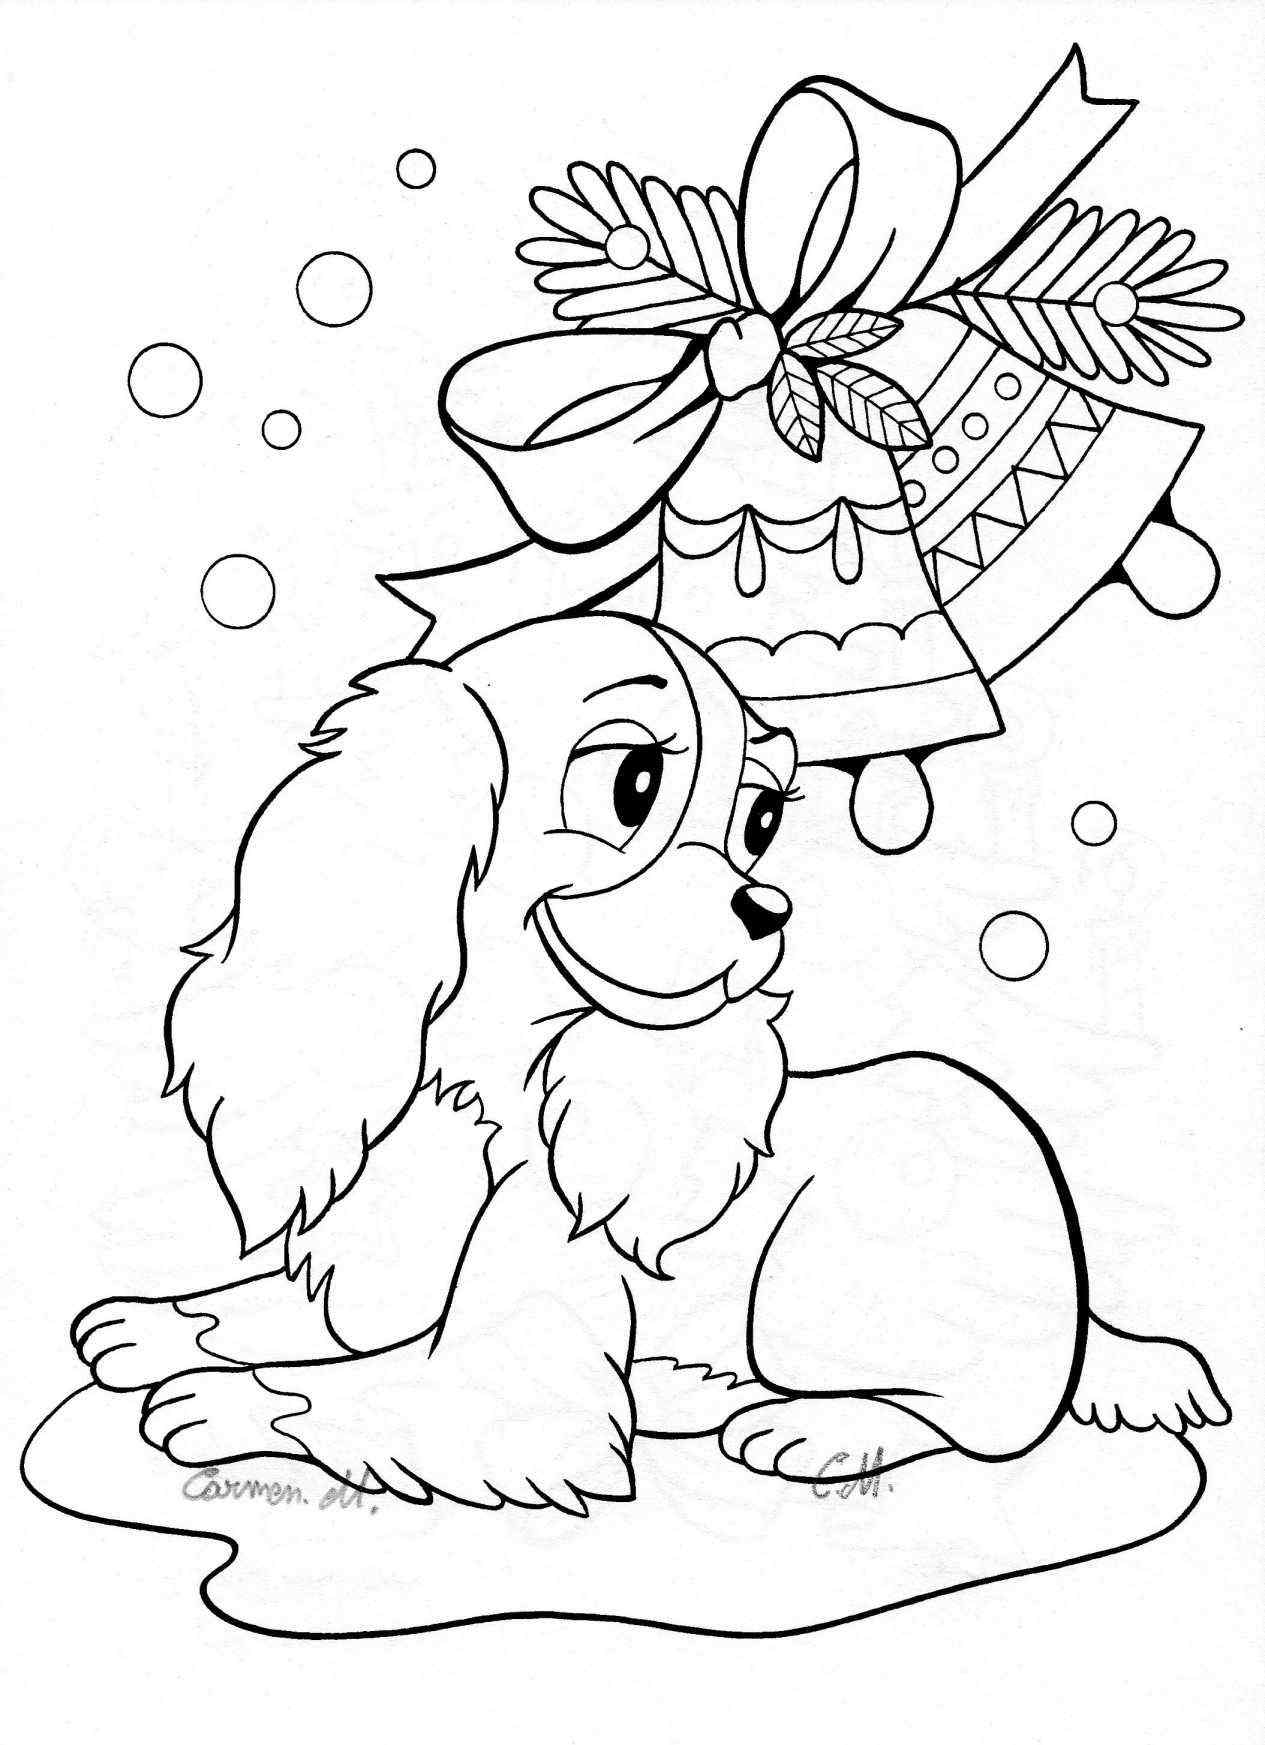 Christmas Colouring Pages Decorations With Merry Top Border Luxury Free